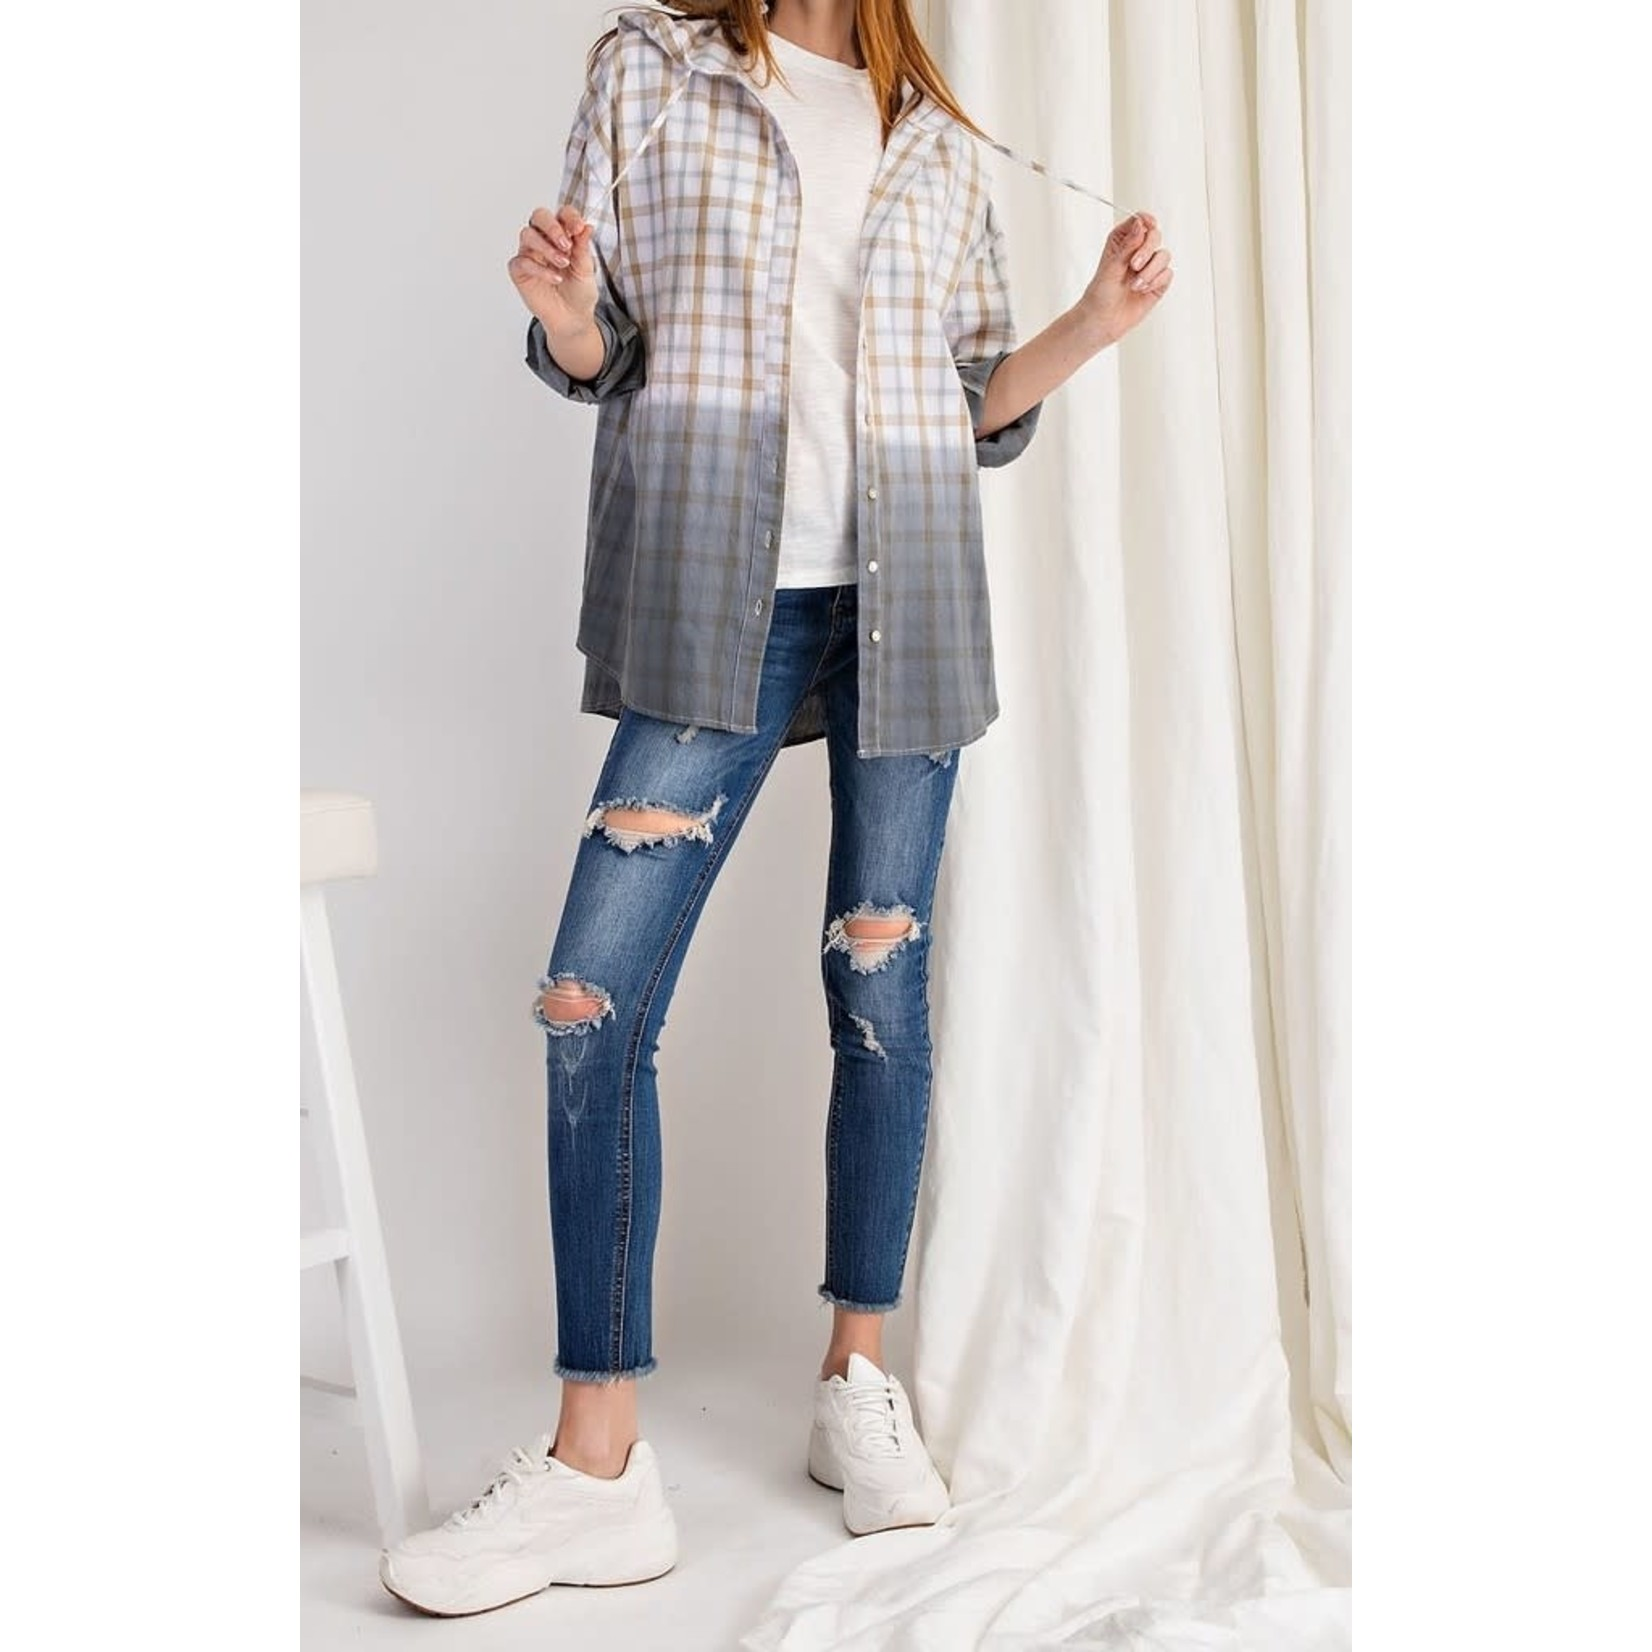 Easel Blouse: Dipped Plaid Button Down